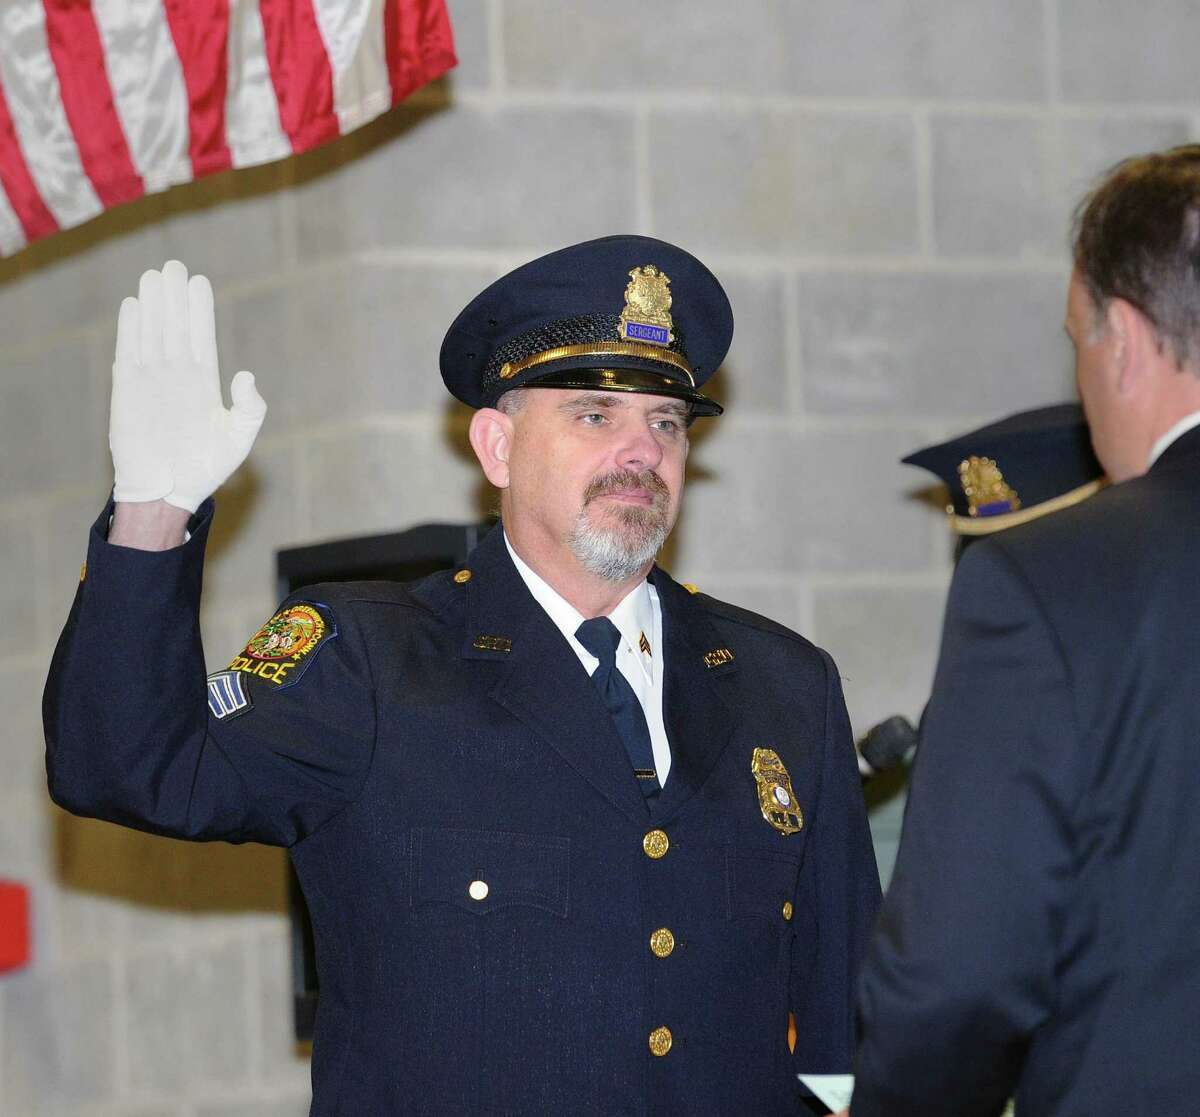 Promotion ceremony for Sergeant John Slusarz, pictured here at left, being sworn in to the rank of lieutenant by Greenwich First Selectman Peter Tesei at the Greenwich Public Safety Complex in Greenwich, Conn., Tuesday, Feb. 28, 2017.